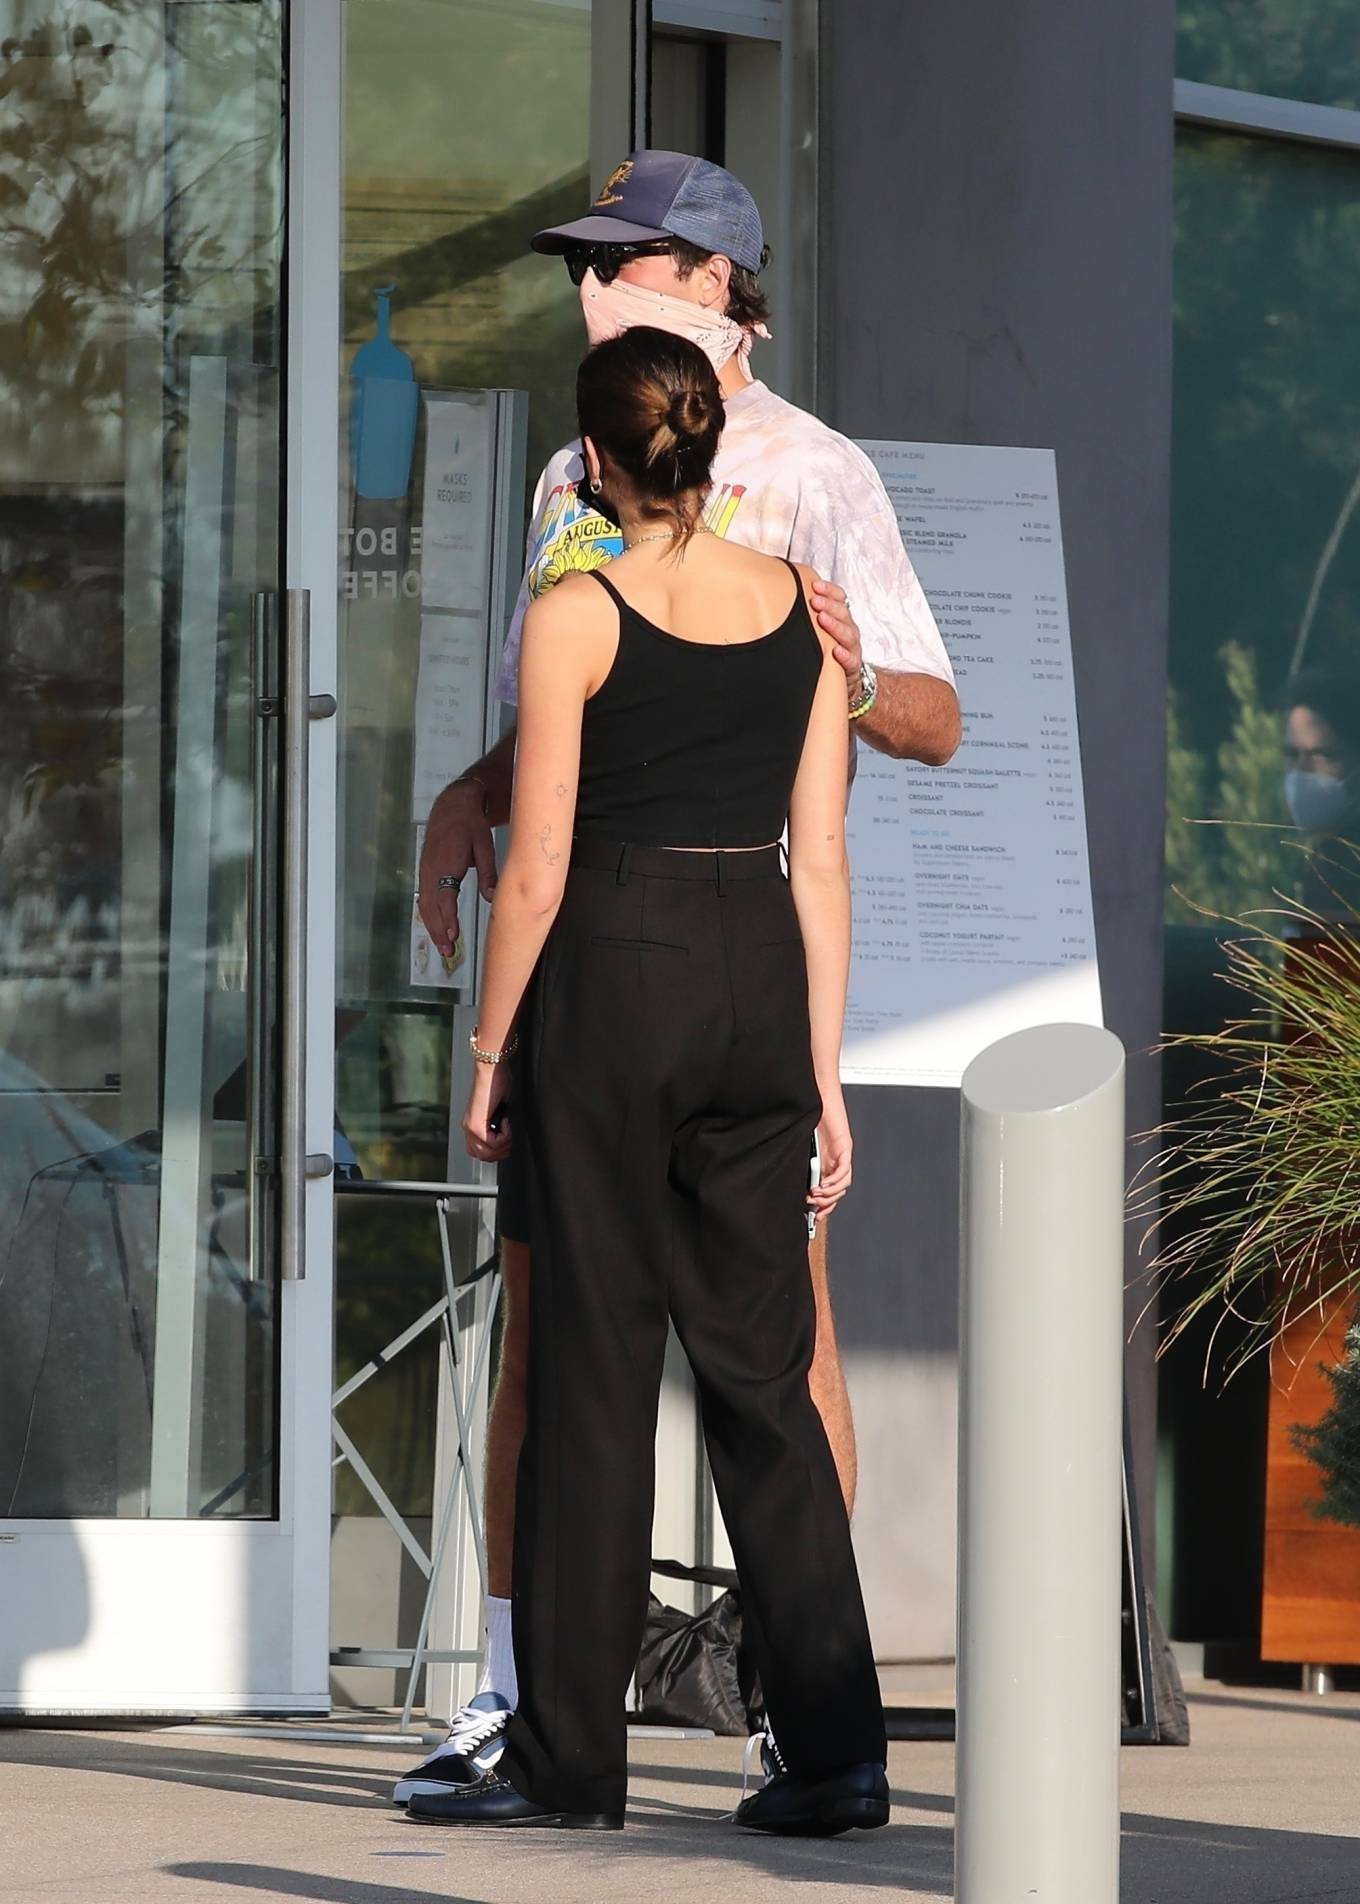 Kaia Gerber rocking a black basic tank top with thin shoulder strap and a scoop neck